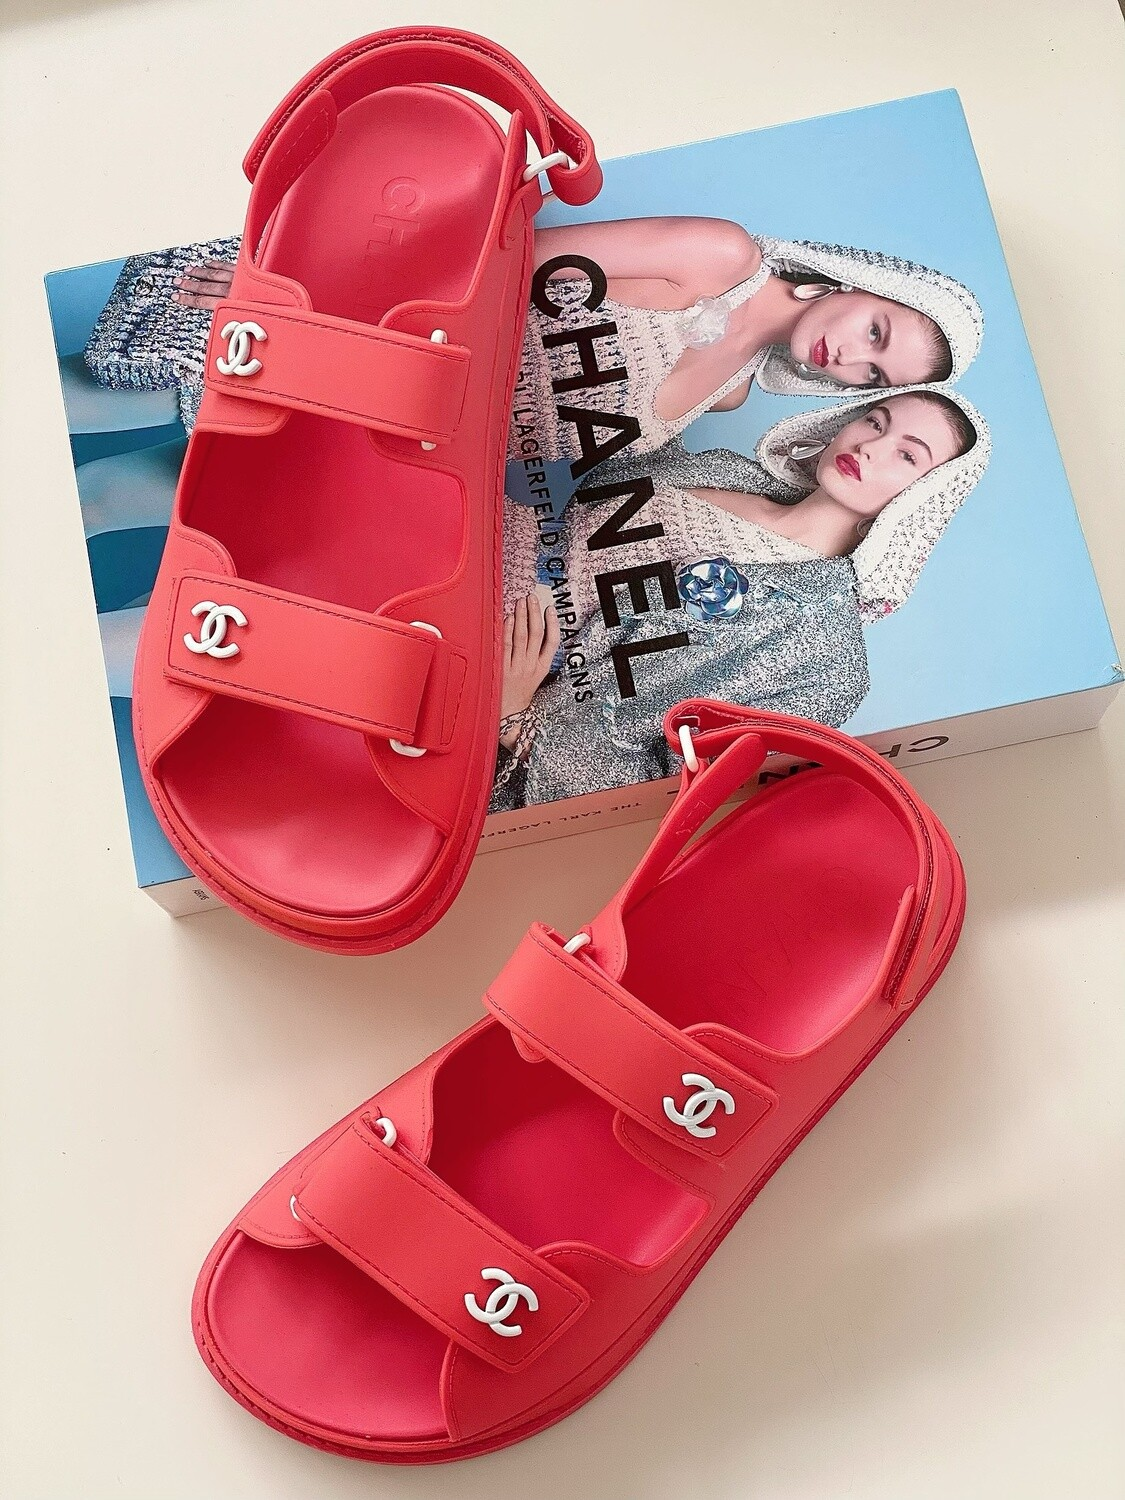 CHANEL CC DAD VELCRO SANDALS CORAL PINK / WHITE 38